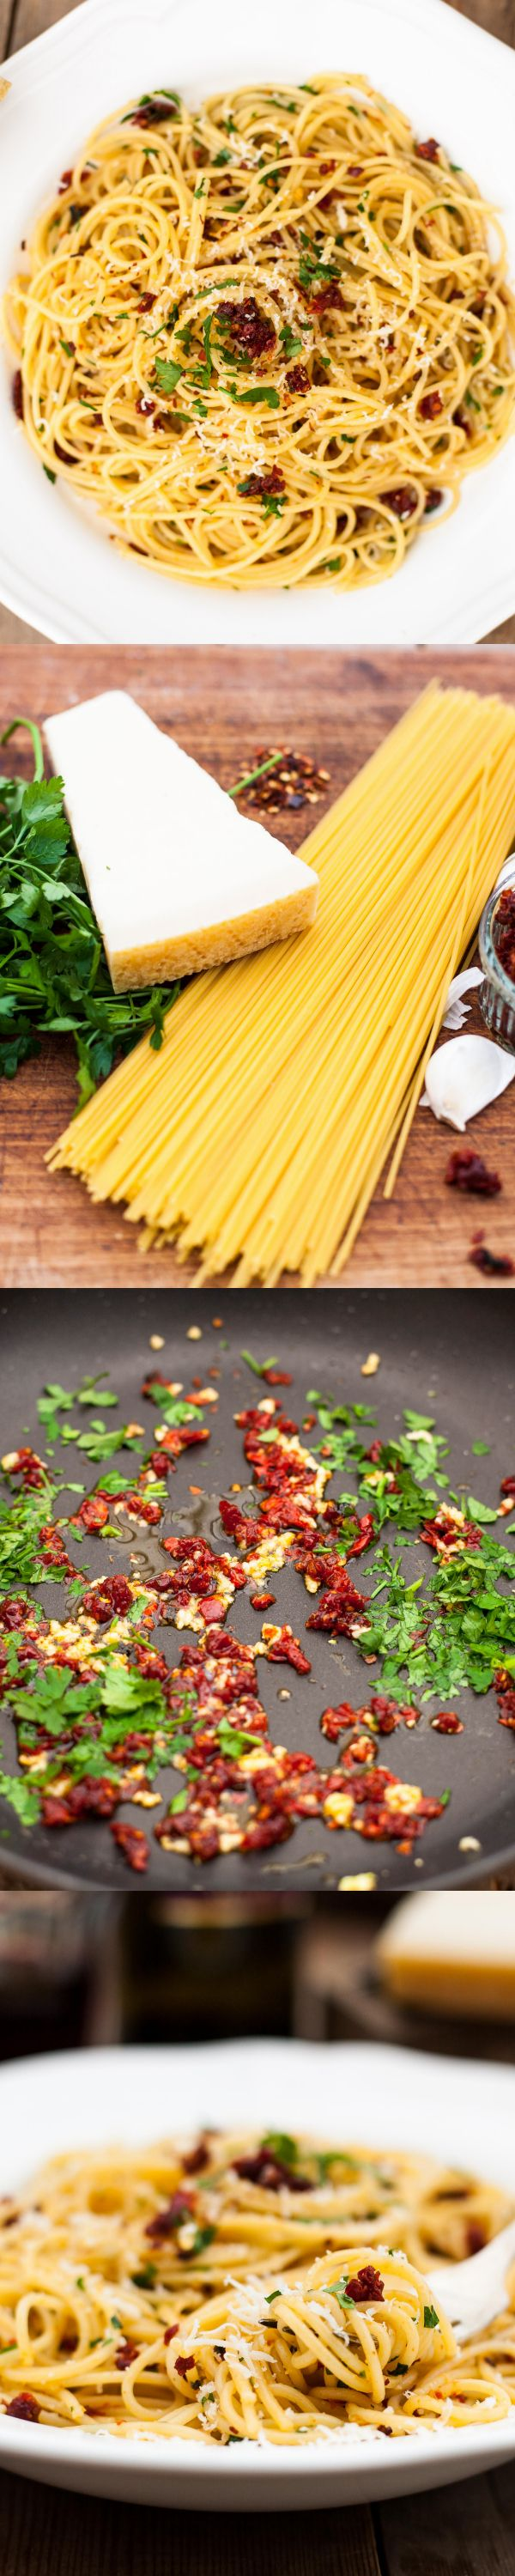 spaghetti alla siciliana (spaghetti with sundried tomatoes, garlic and olive oil). only 5 ingredients.